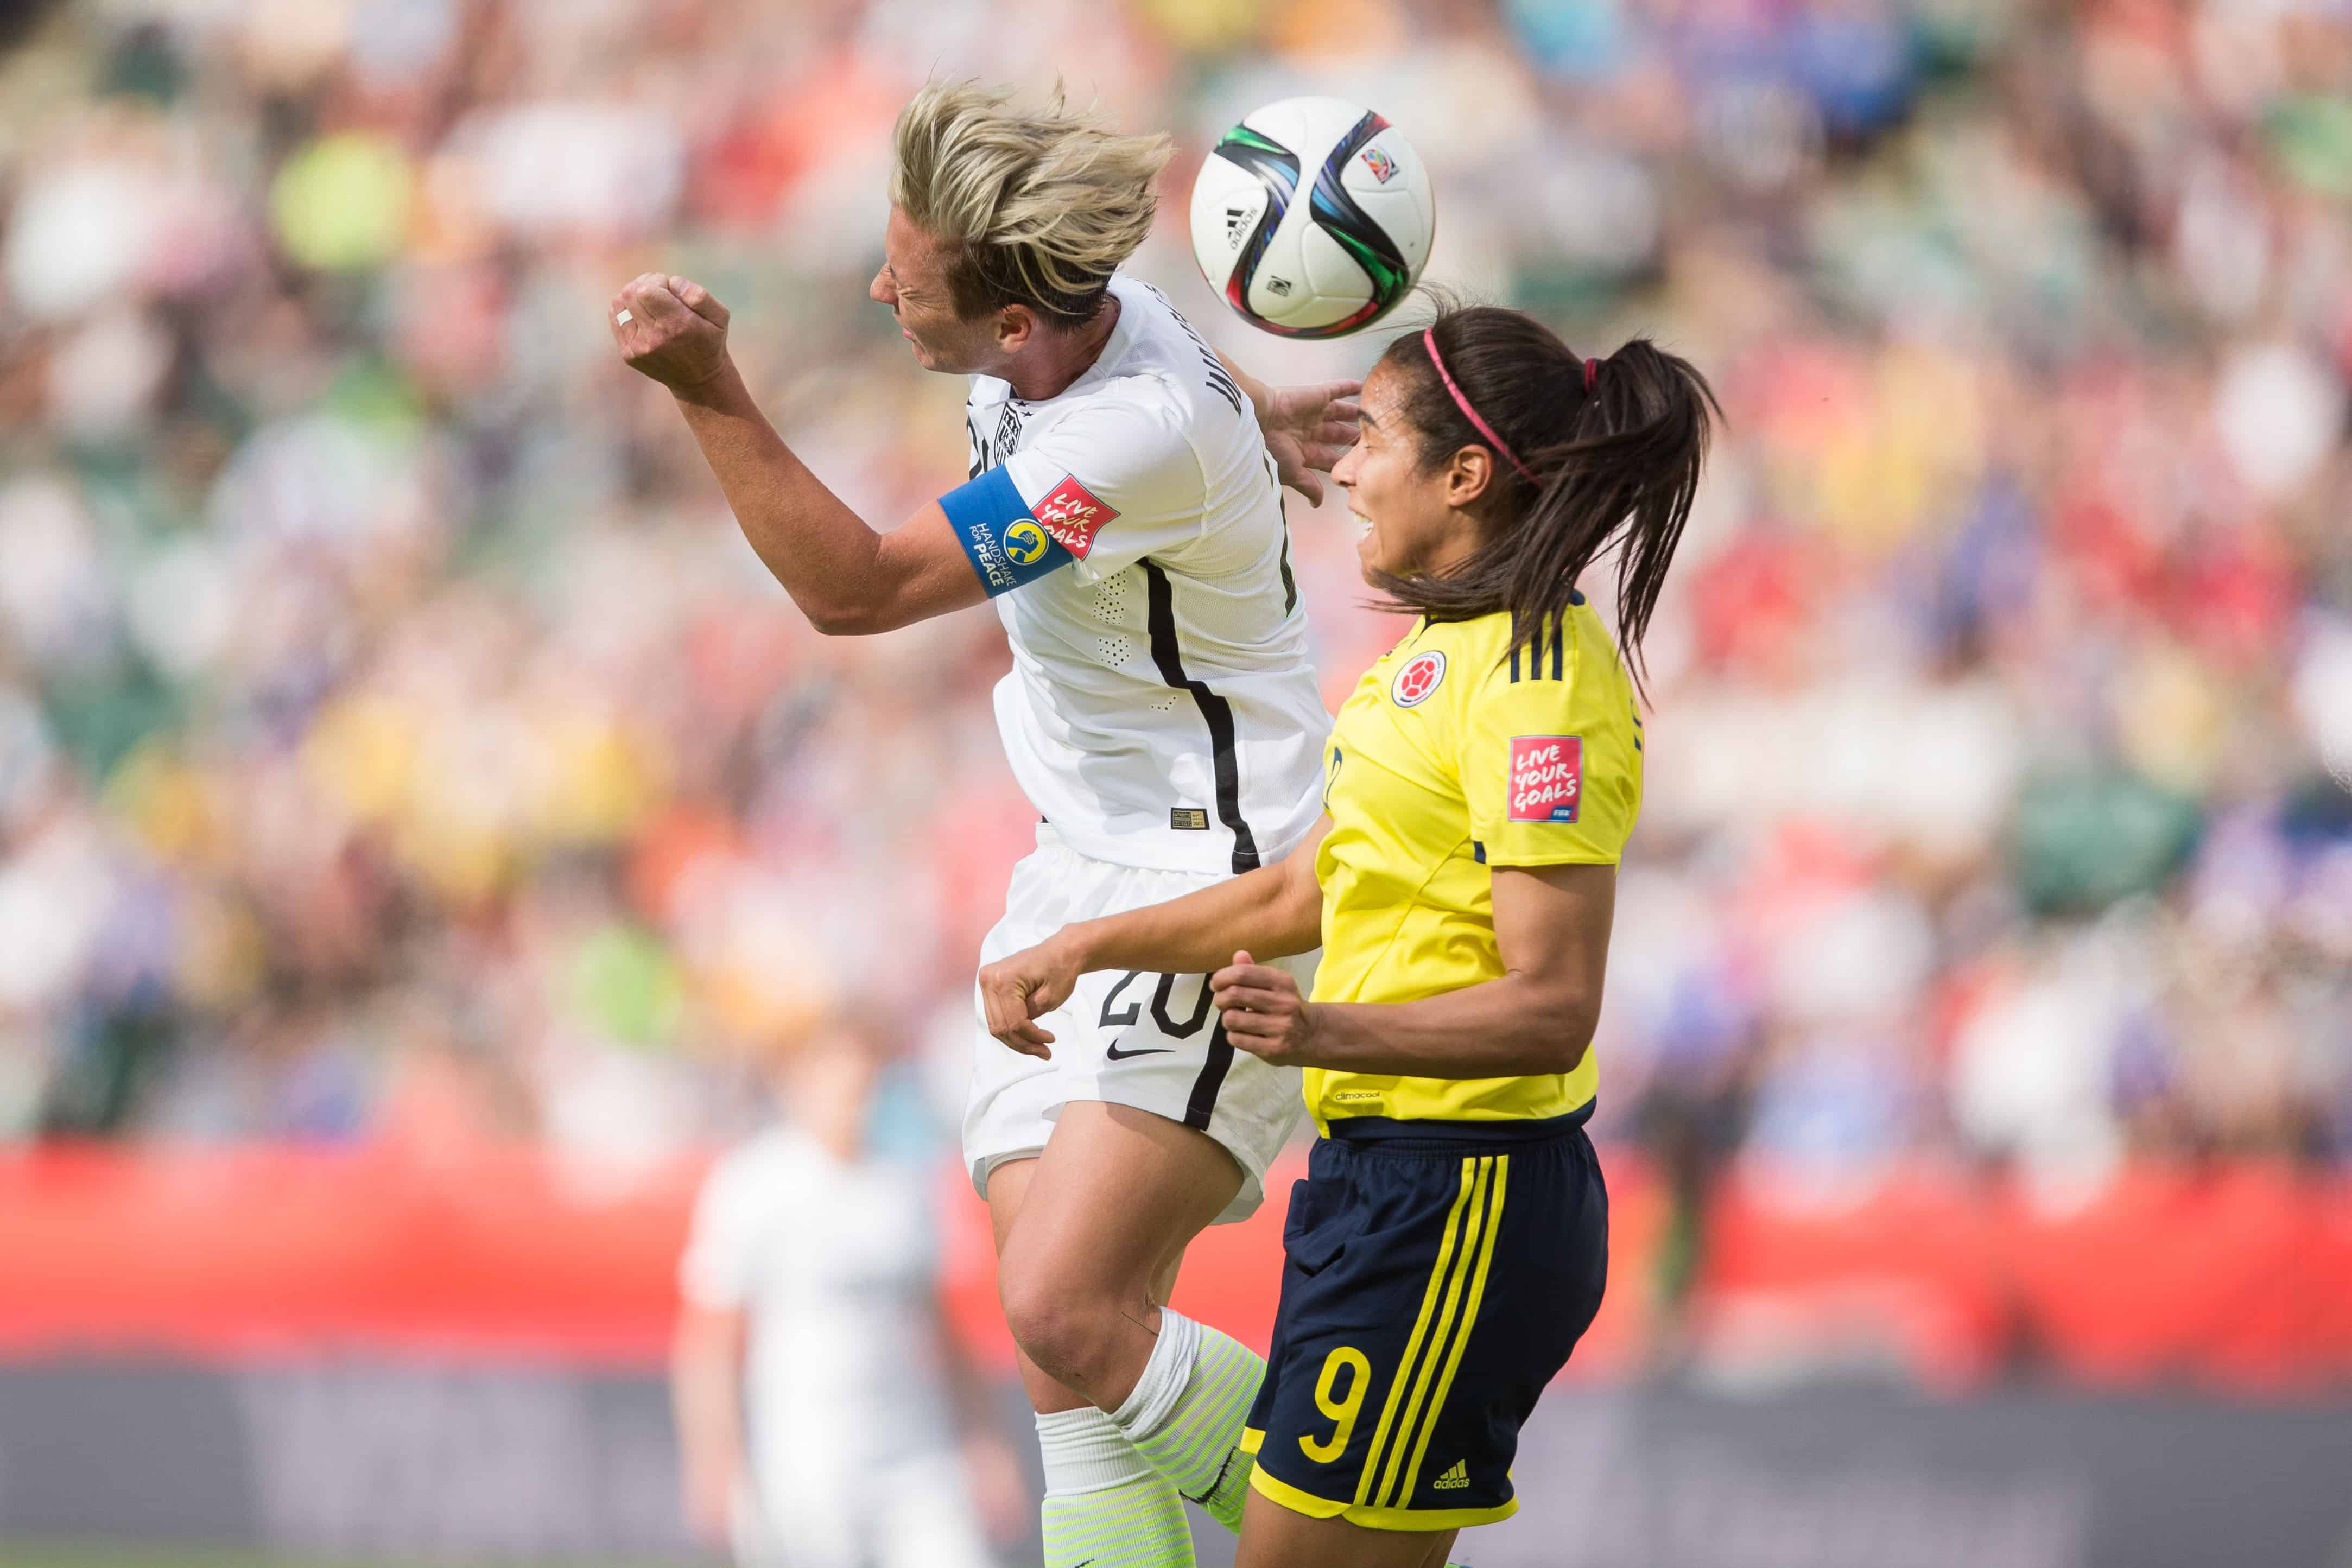 USA's Abby Wambach, left, and Colombia's Orianica Velasquez jump for the ball.